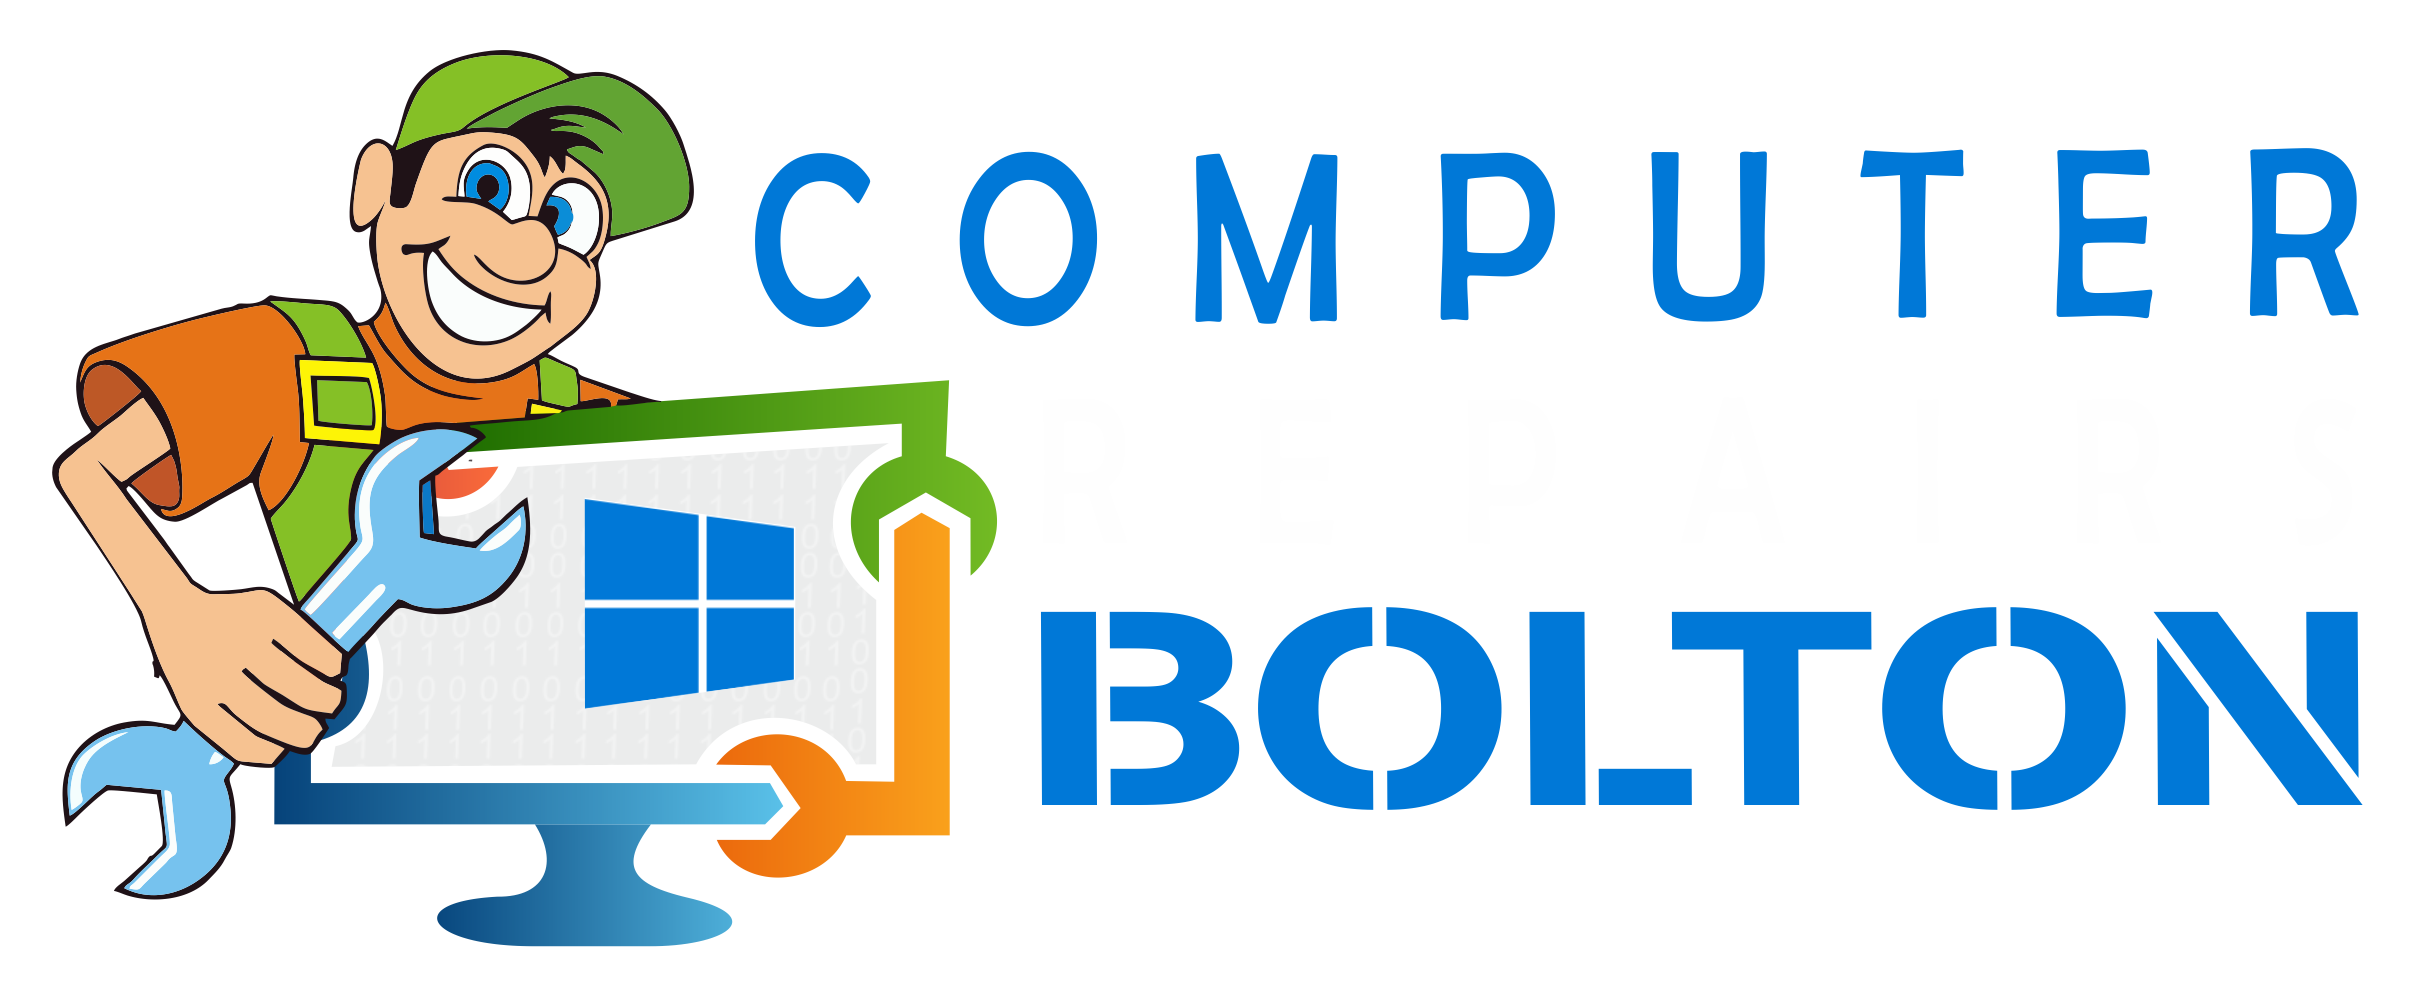 Engineer clipart computer repair. Repairs bolton your one